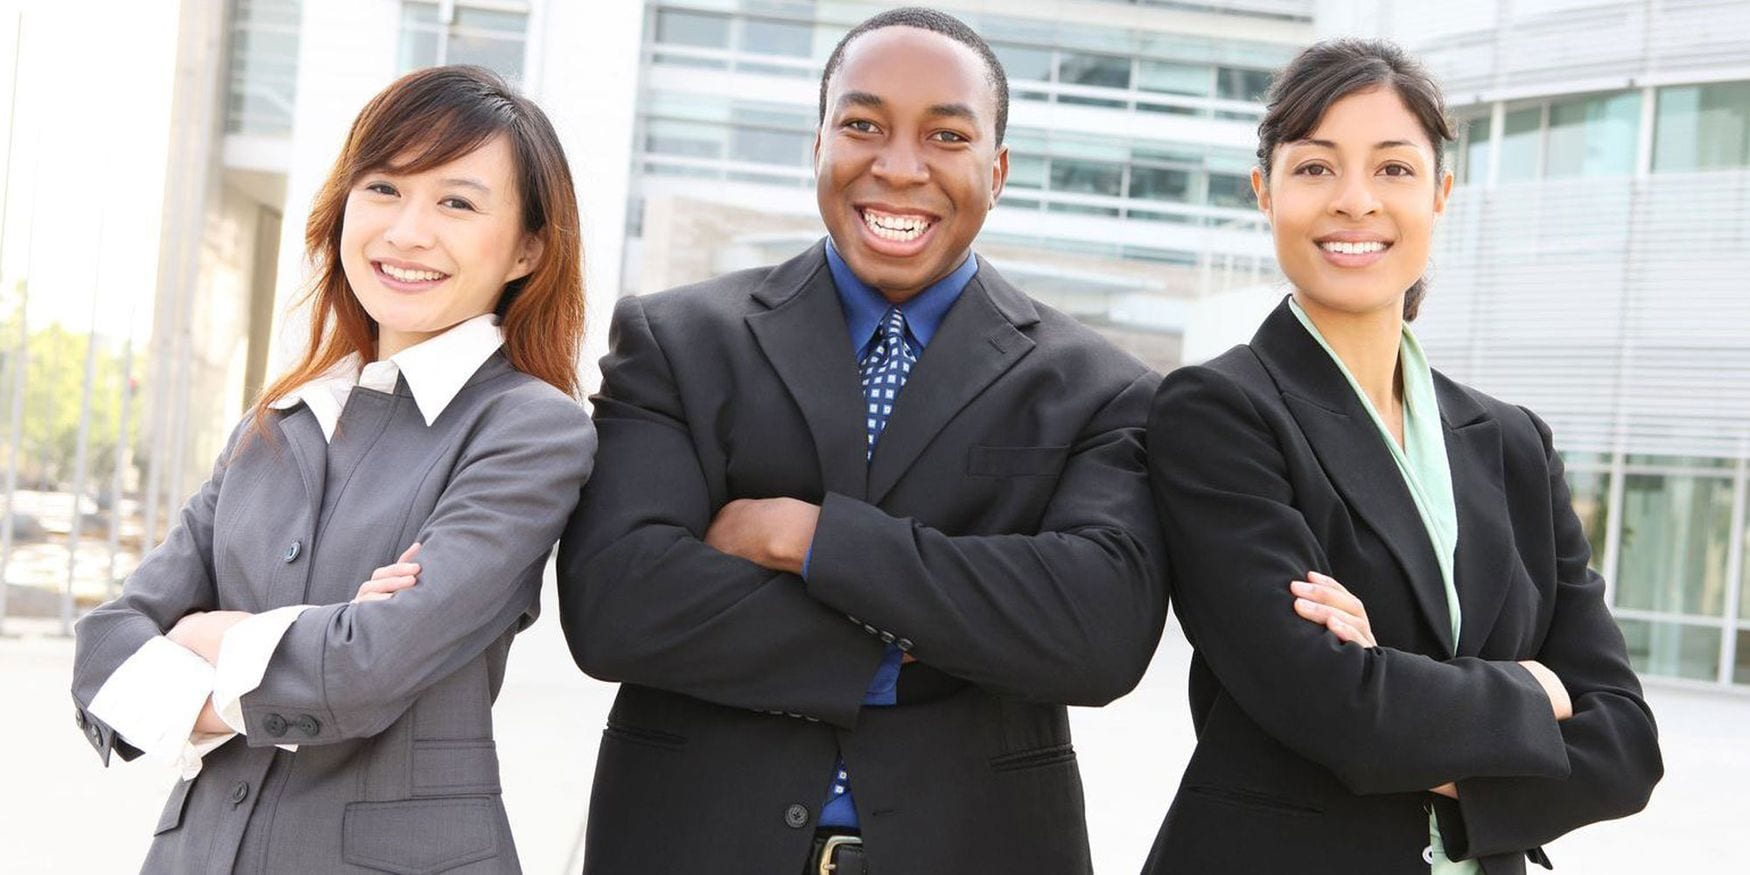 Two business women and one business man are standing with their arms crossed and smiling at the camera